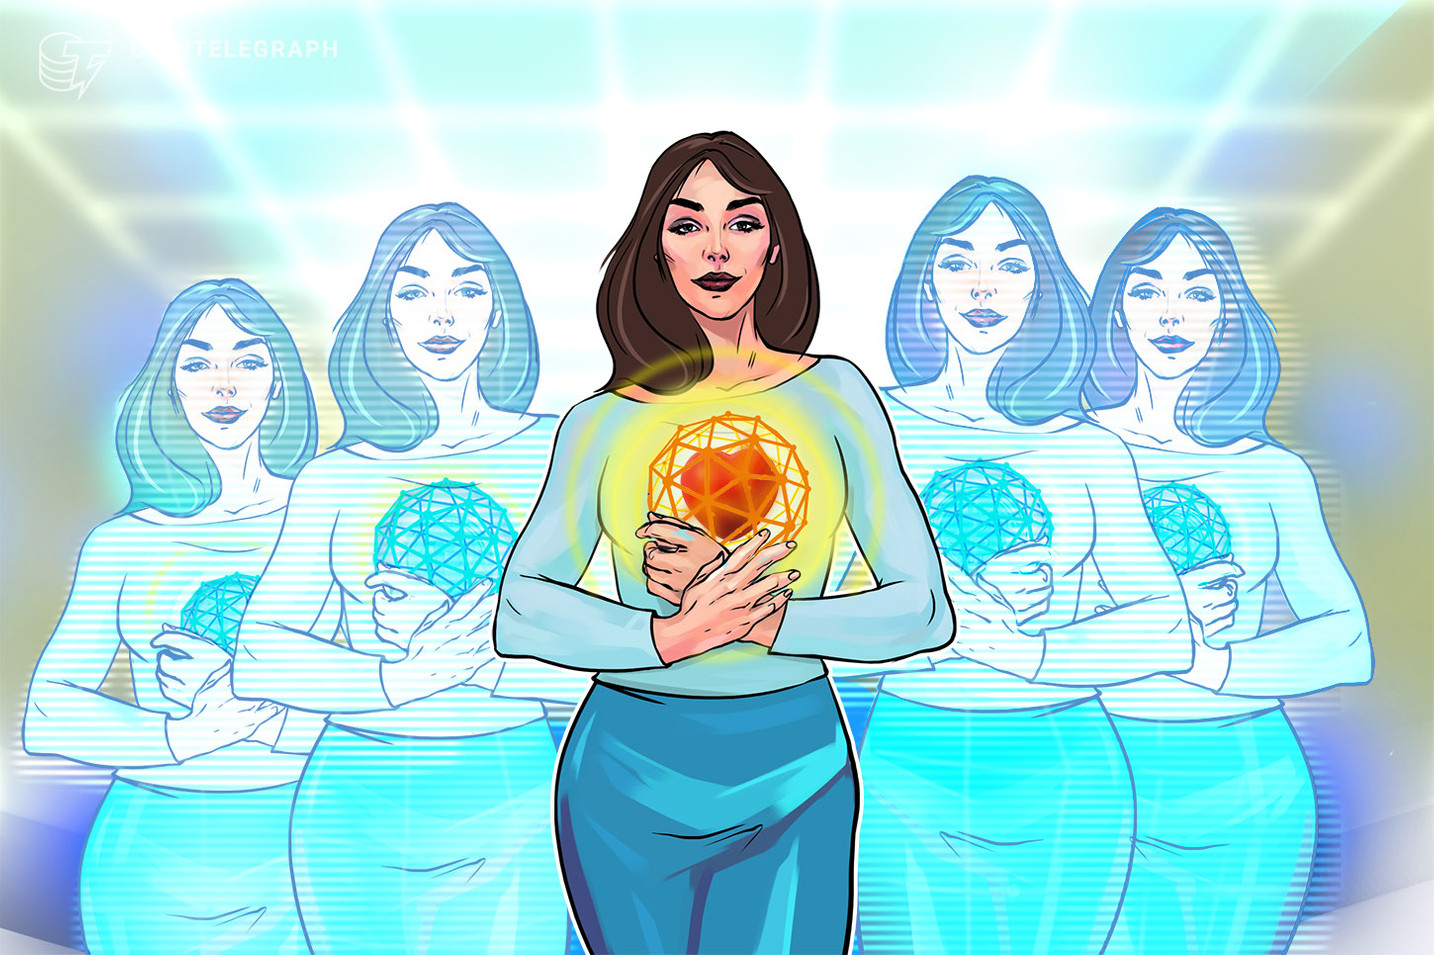 Binance Charity Announces Alliance to Support Feminine Health